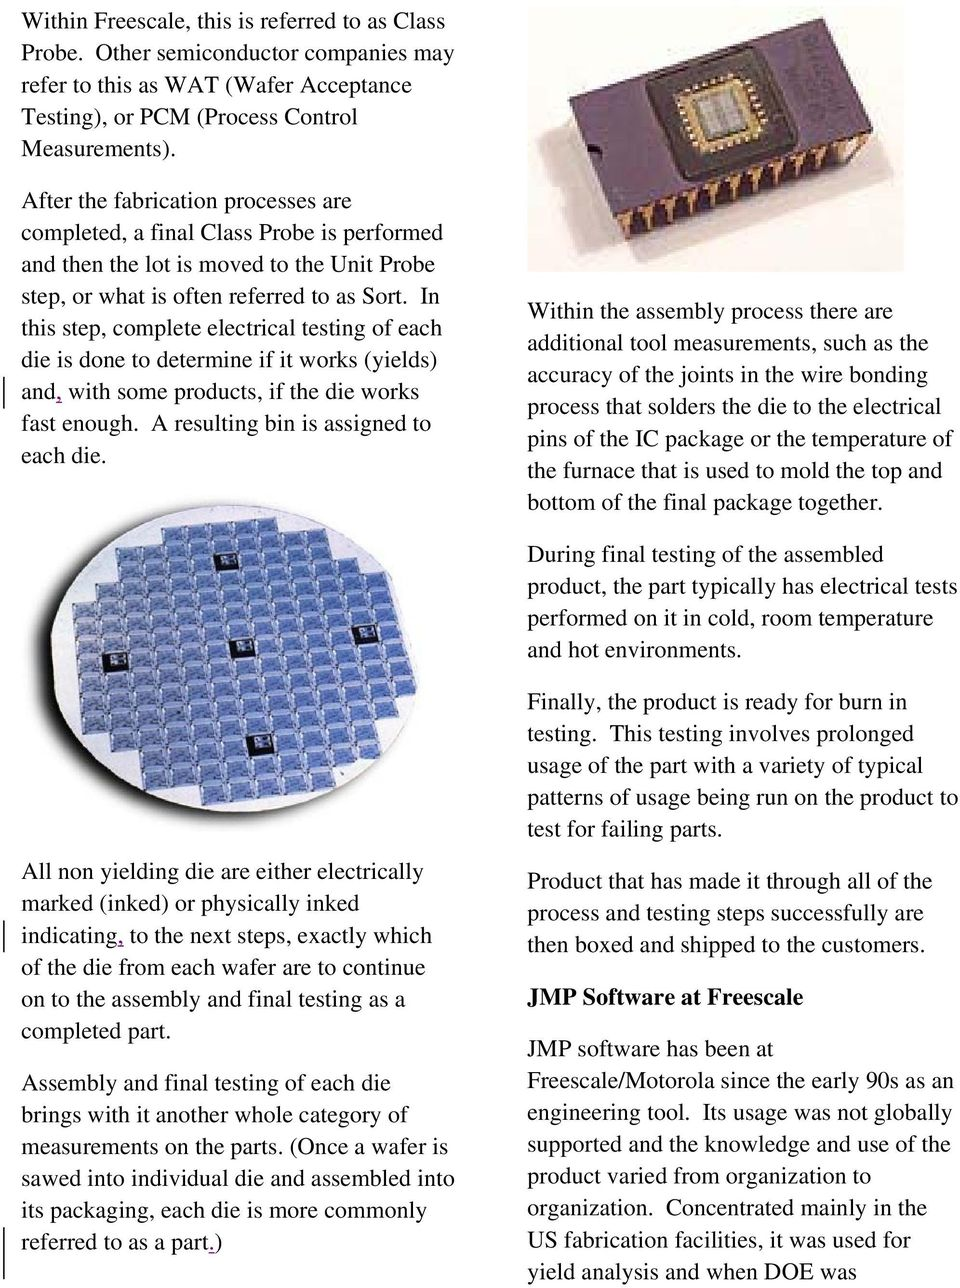 The Turning of JMP Software into a Semiconductor Analysis